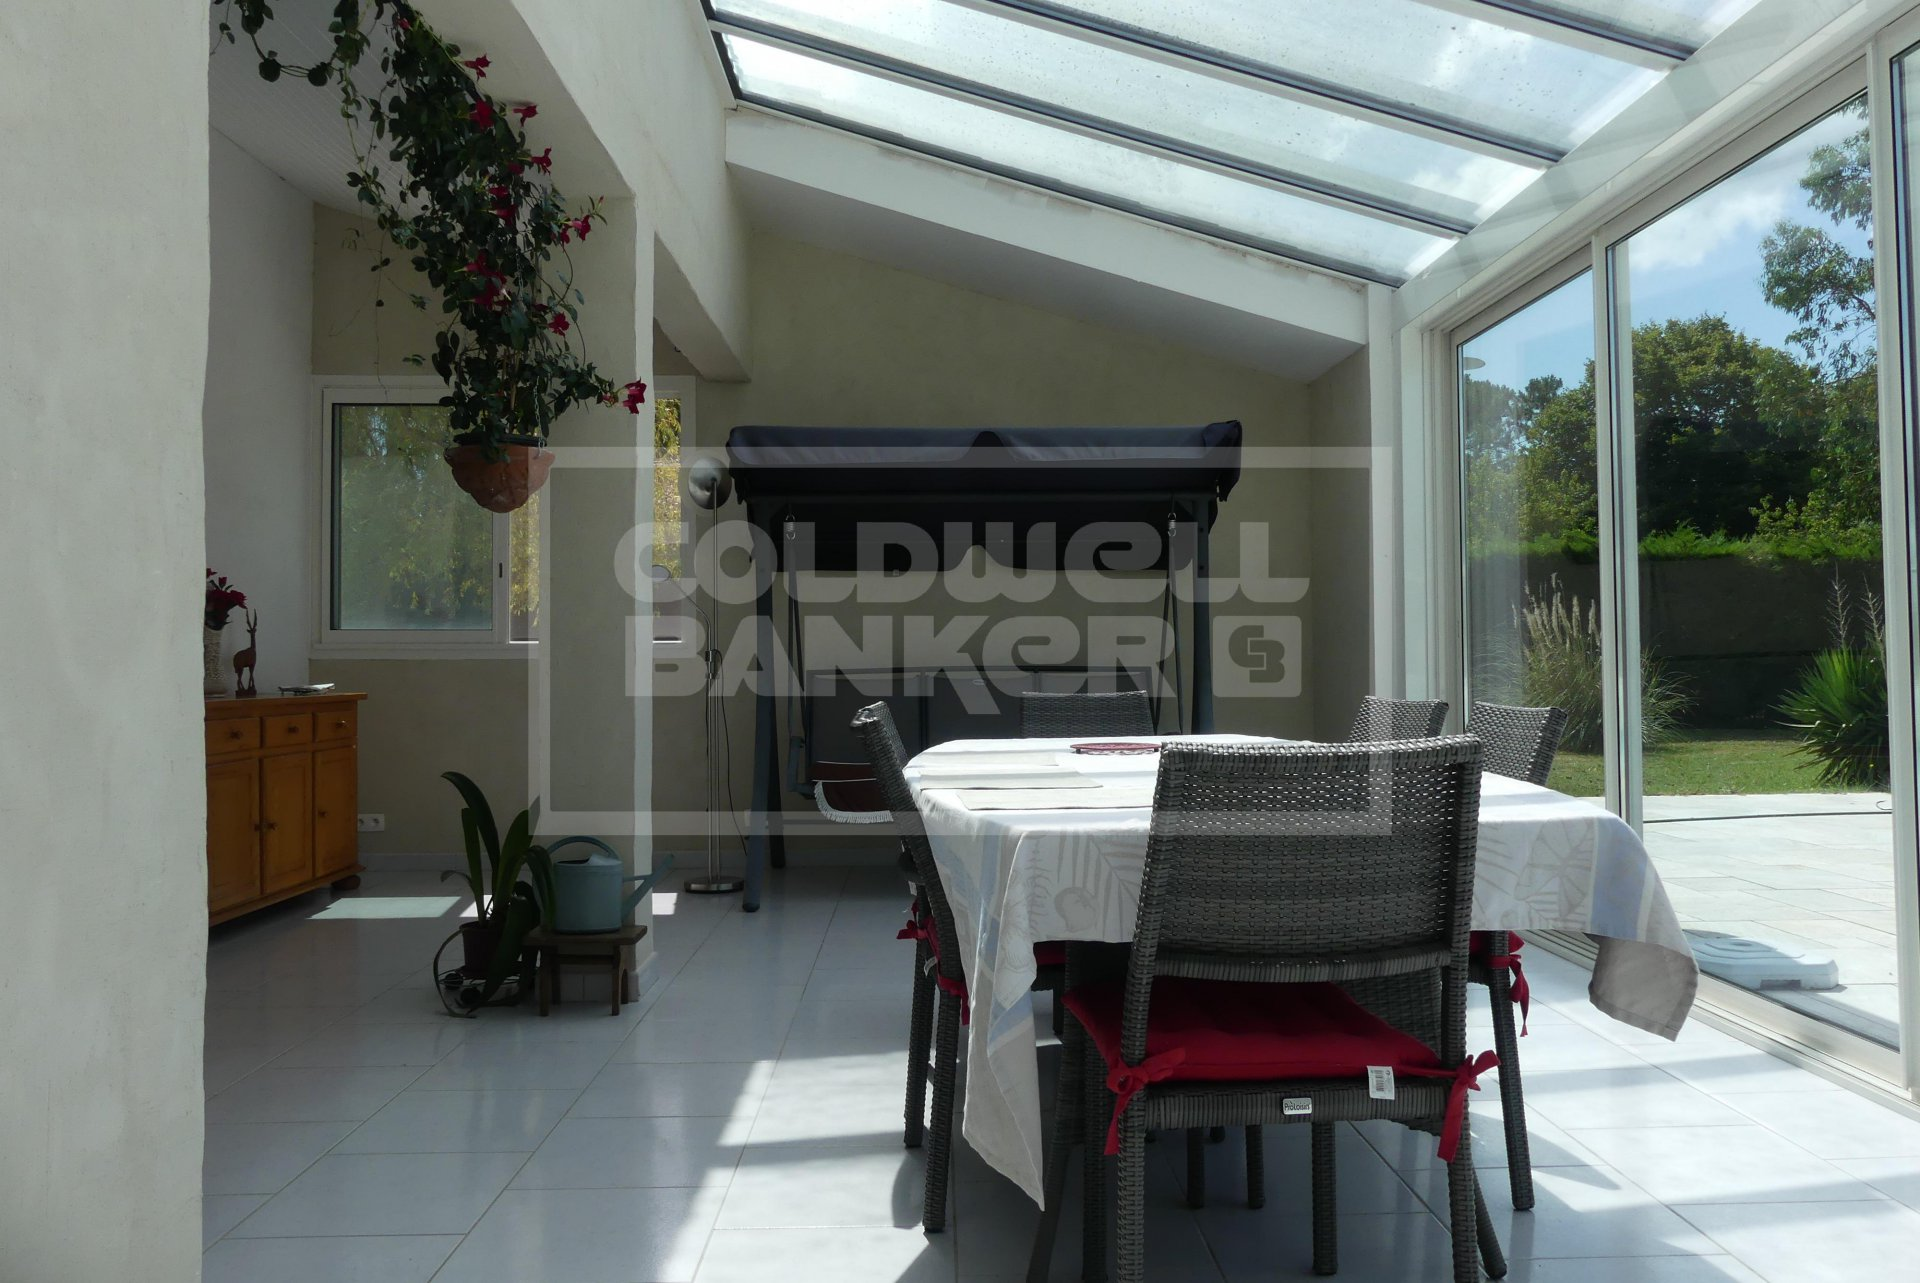 213 sqm Bungalow and Pool for Sale in Breuillet - quiet area -